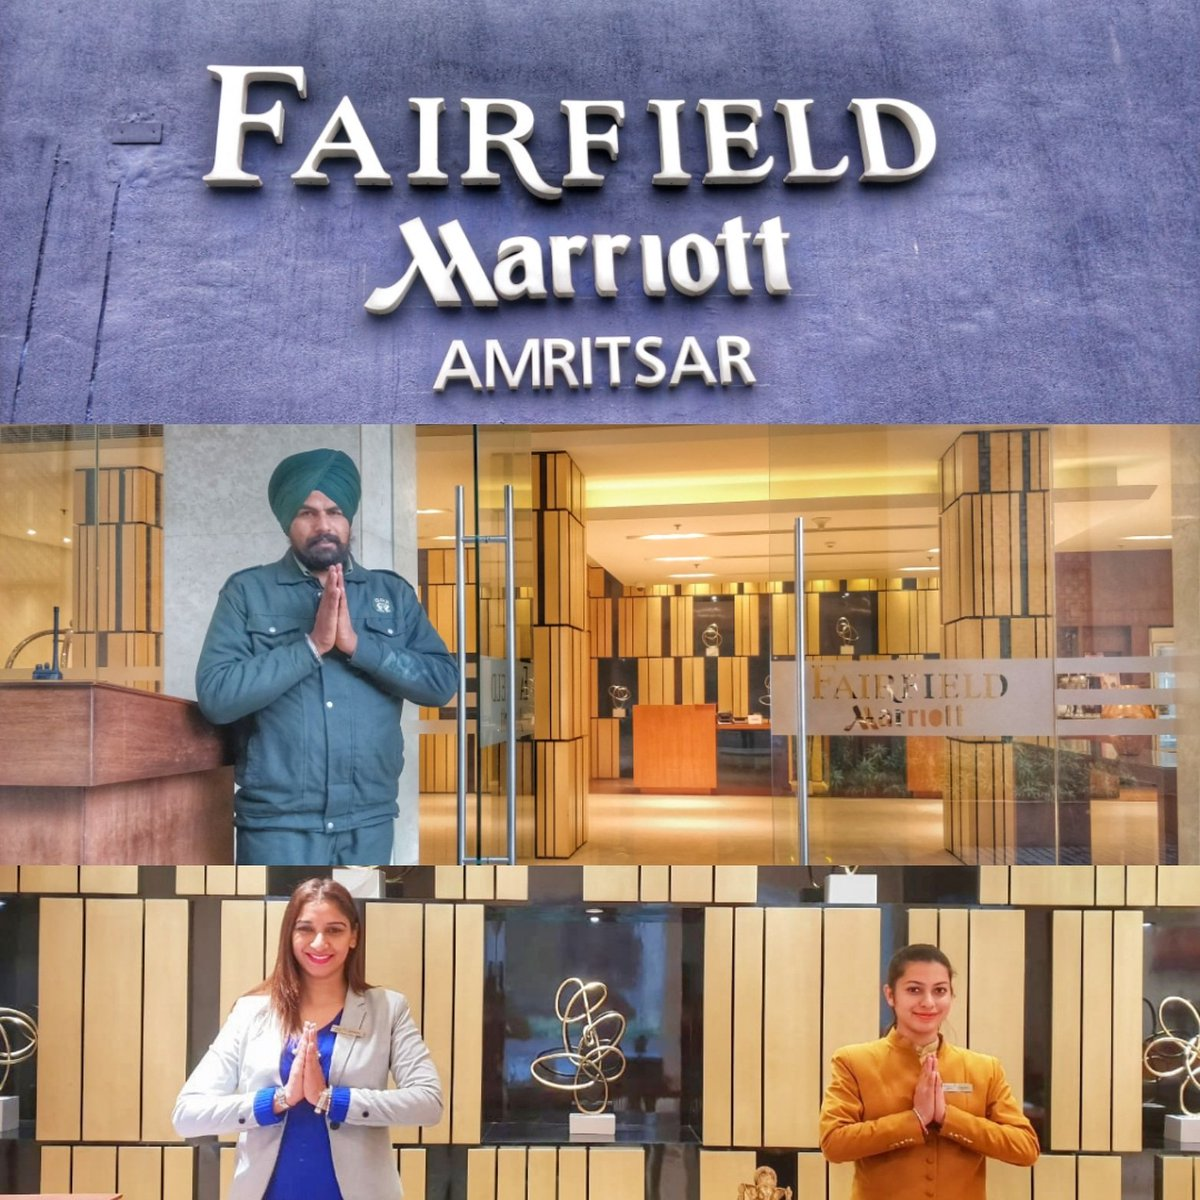 The Amritsar journey has begun. There's a feeling of warmth nd hospitality when you are greeted with a big smile. Much to explore nd experience. Watch this space to know more. @fairfieldamr @nomllers  #BeautyOfSimplicity #FairfieldByMarriott #holidayiq #holidayiqcommunity https://t.co/nQZEv47lxH